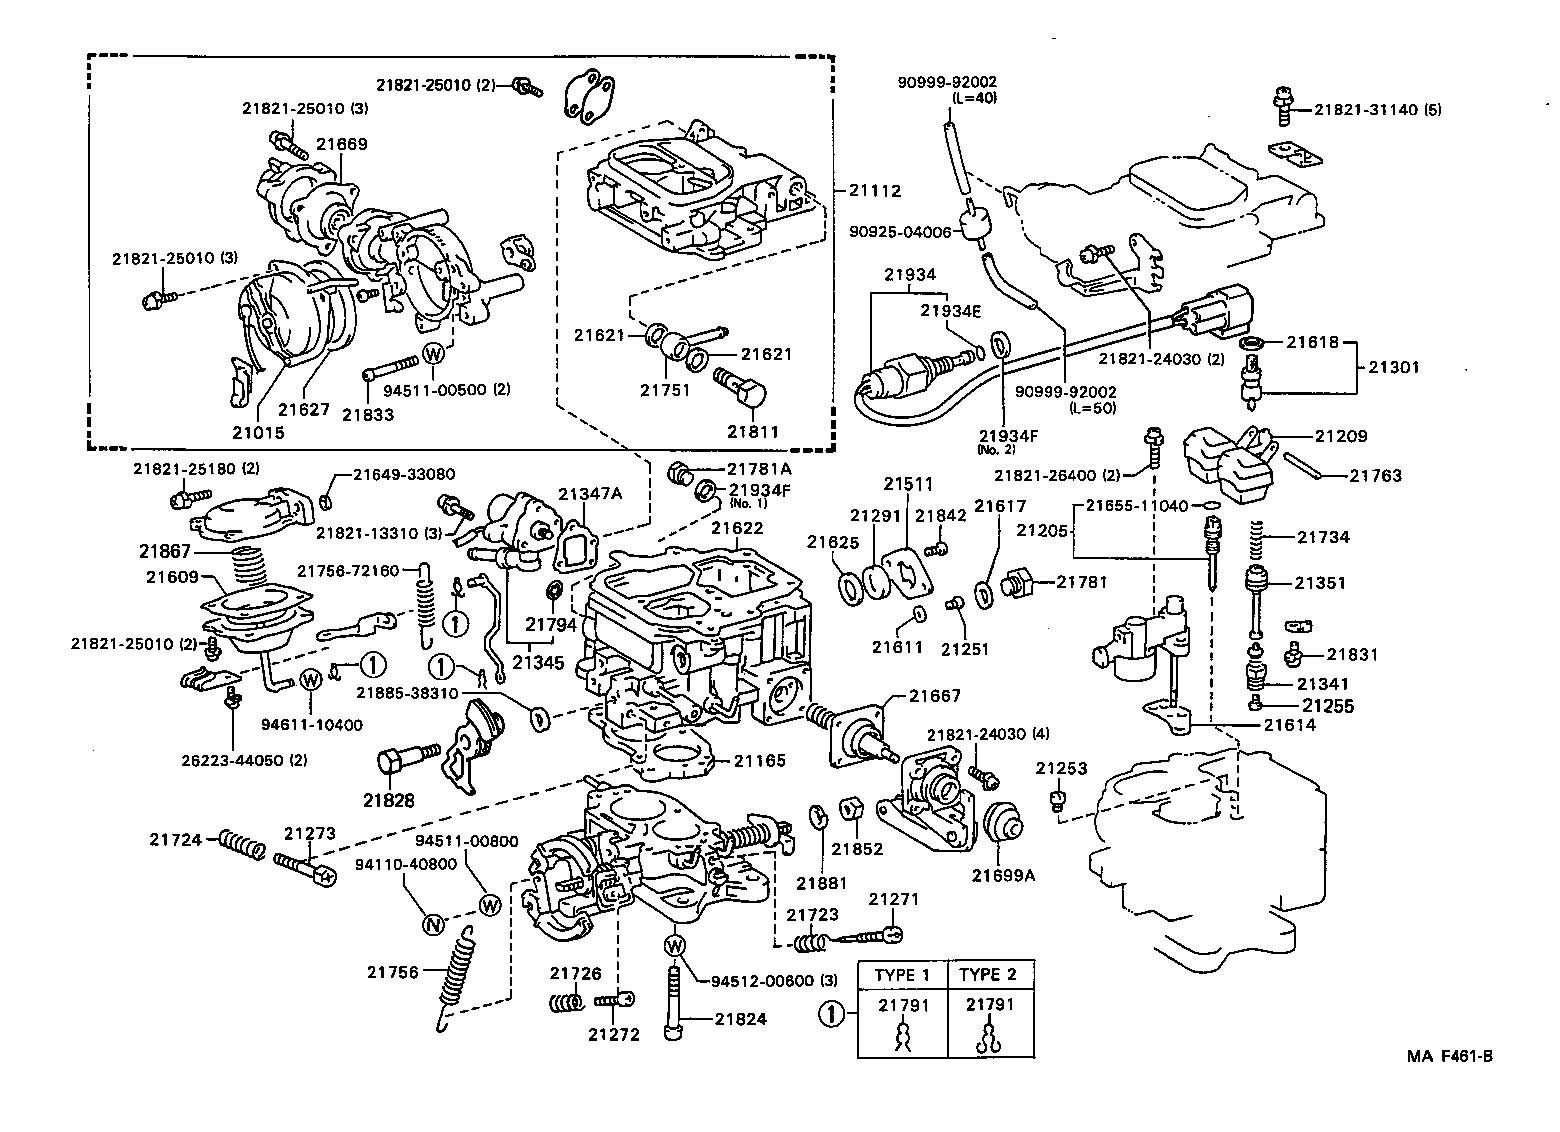 [WRG-9867] 1989 Toyota Corolla Fuse Box Diagram